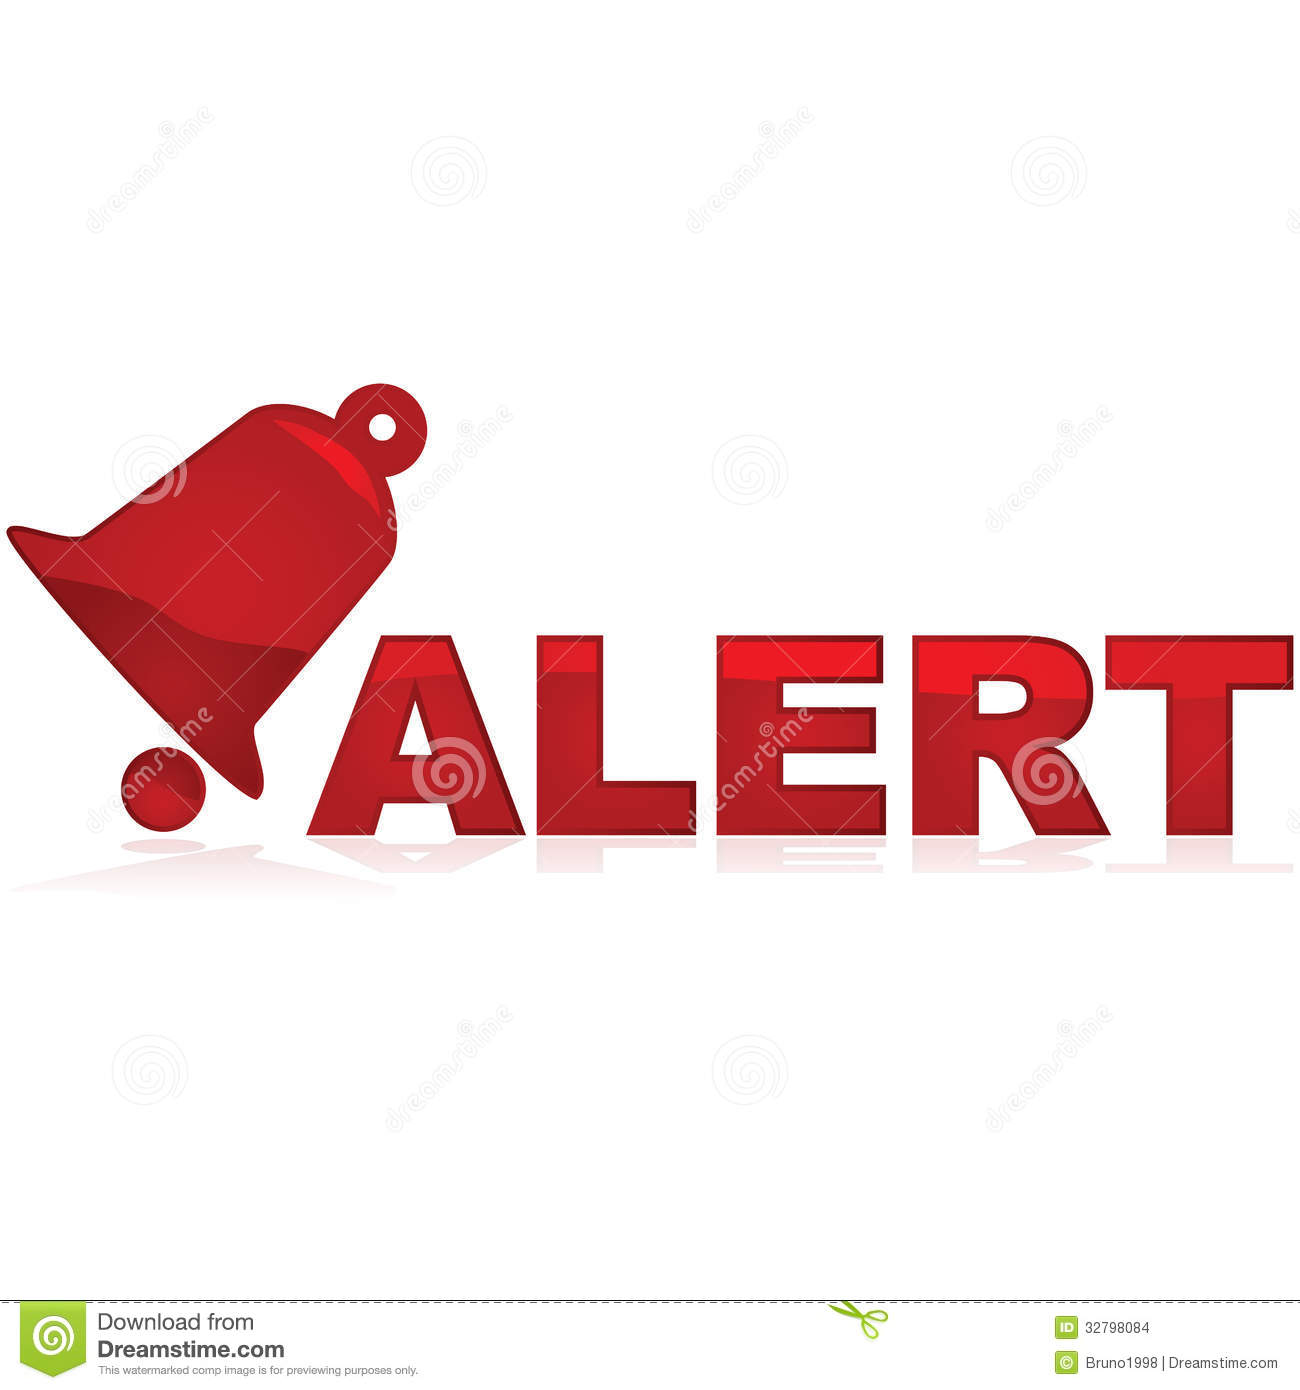 Glossy red icon showing a bell and the word alert beside it.